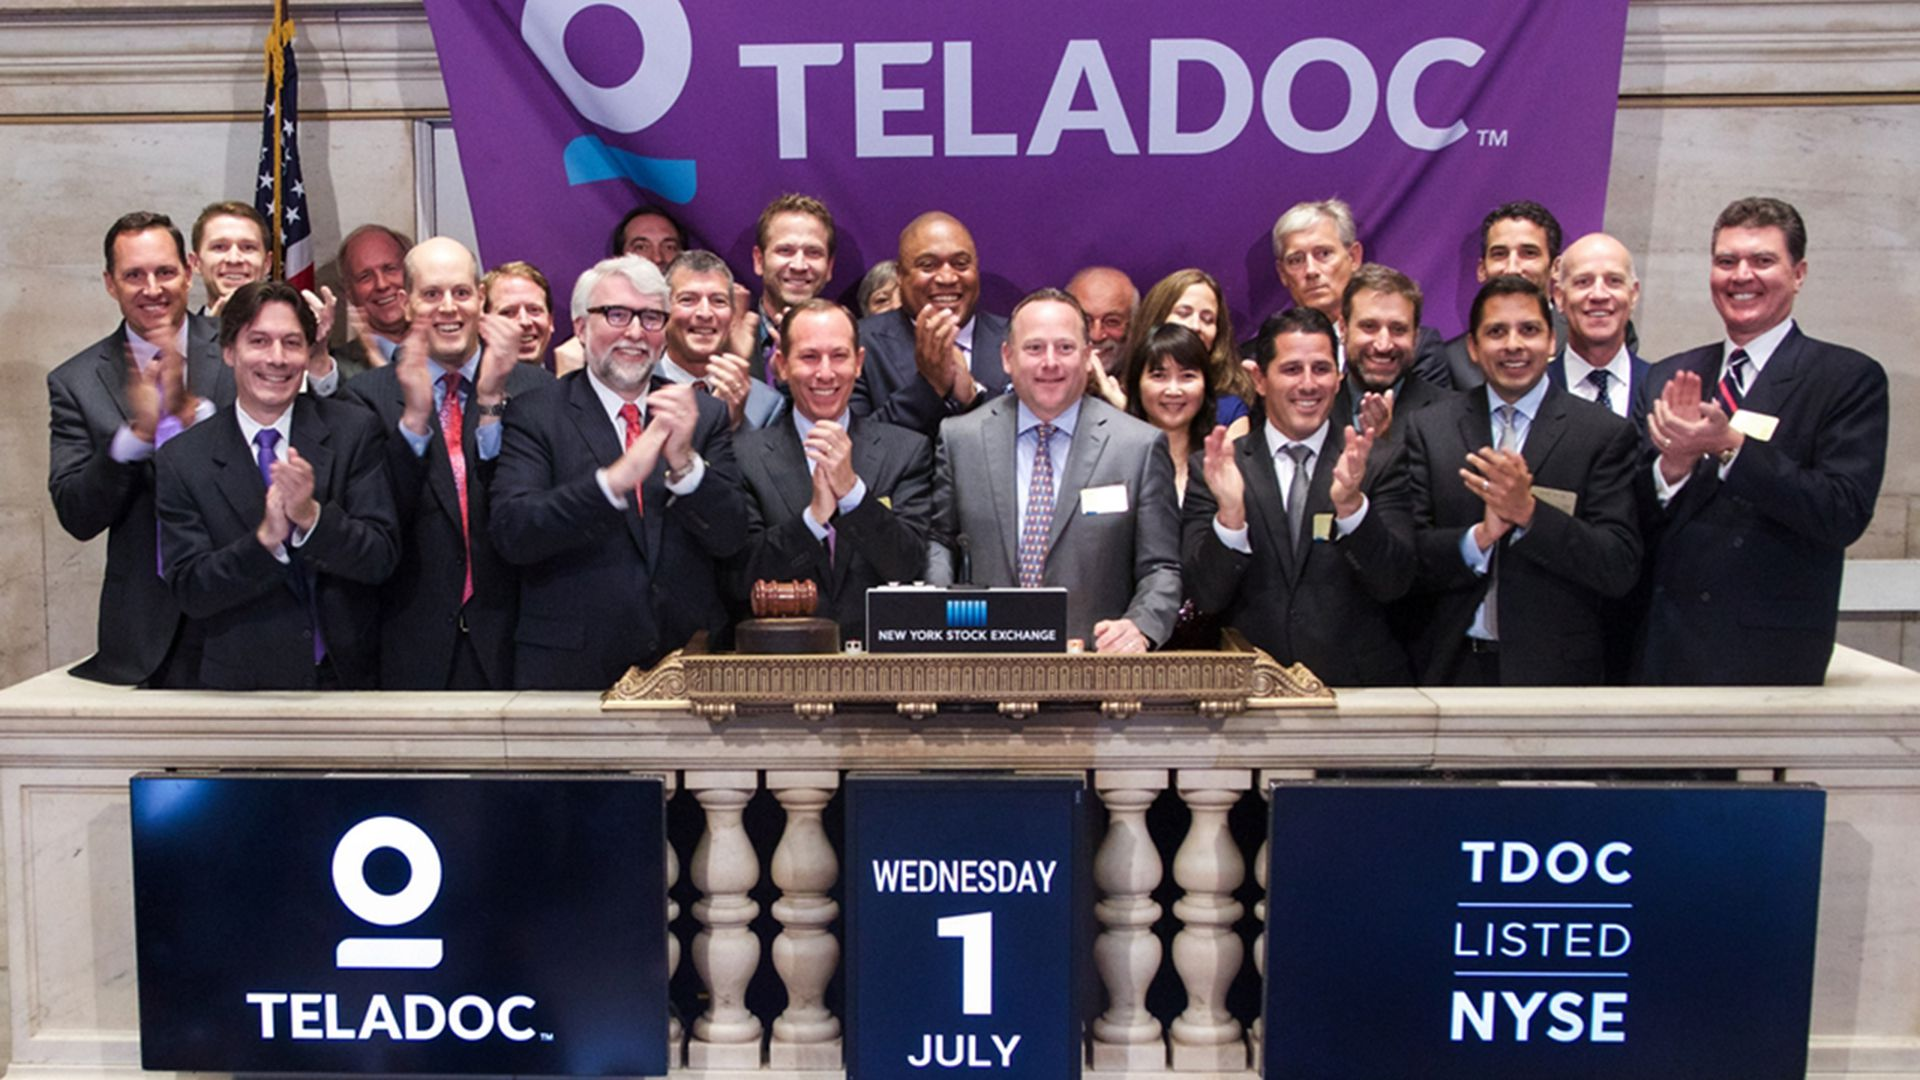 Teladoc executives at the New York Stock Exchange.